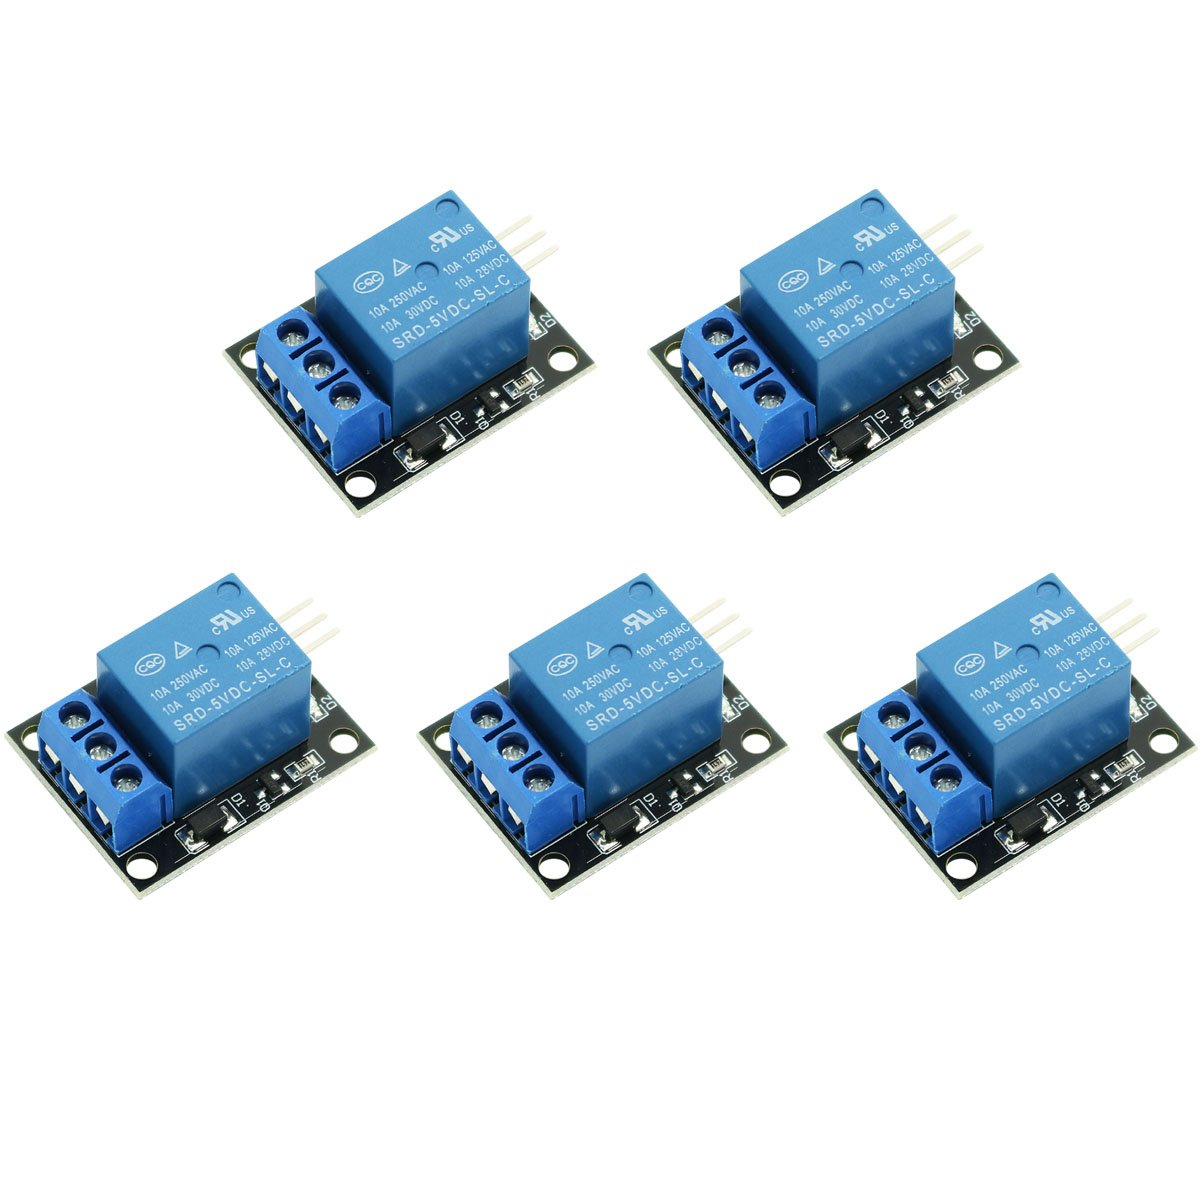 2-Pack DC 5V 8 Channel Relay Module with Optocoupler Expansion Board for Arduino UNO R3 MEGA 2560 1280 PIC AVR DSP ARM STM32 Raspberry Pi